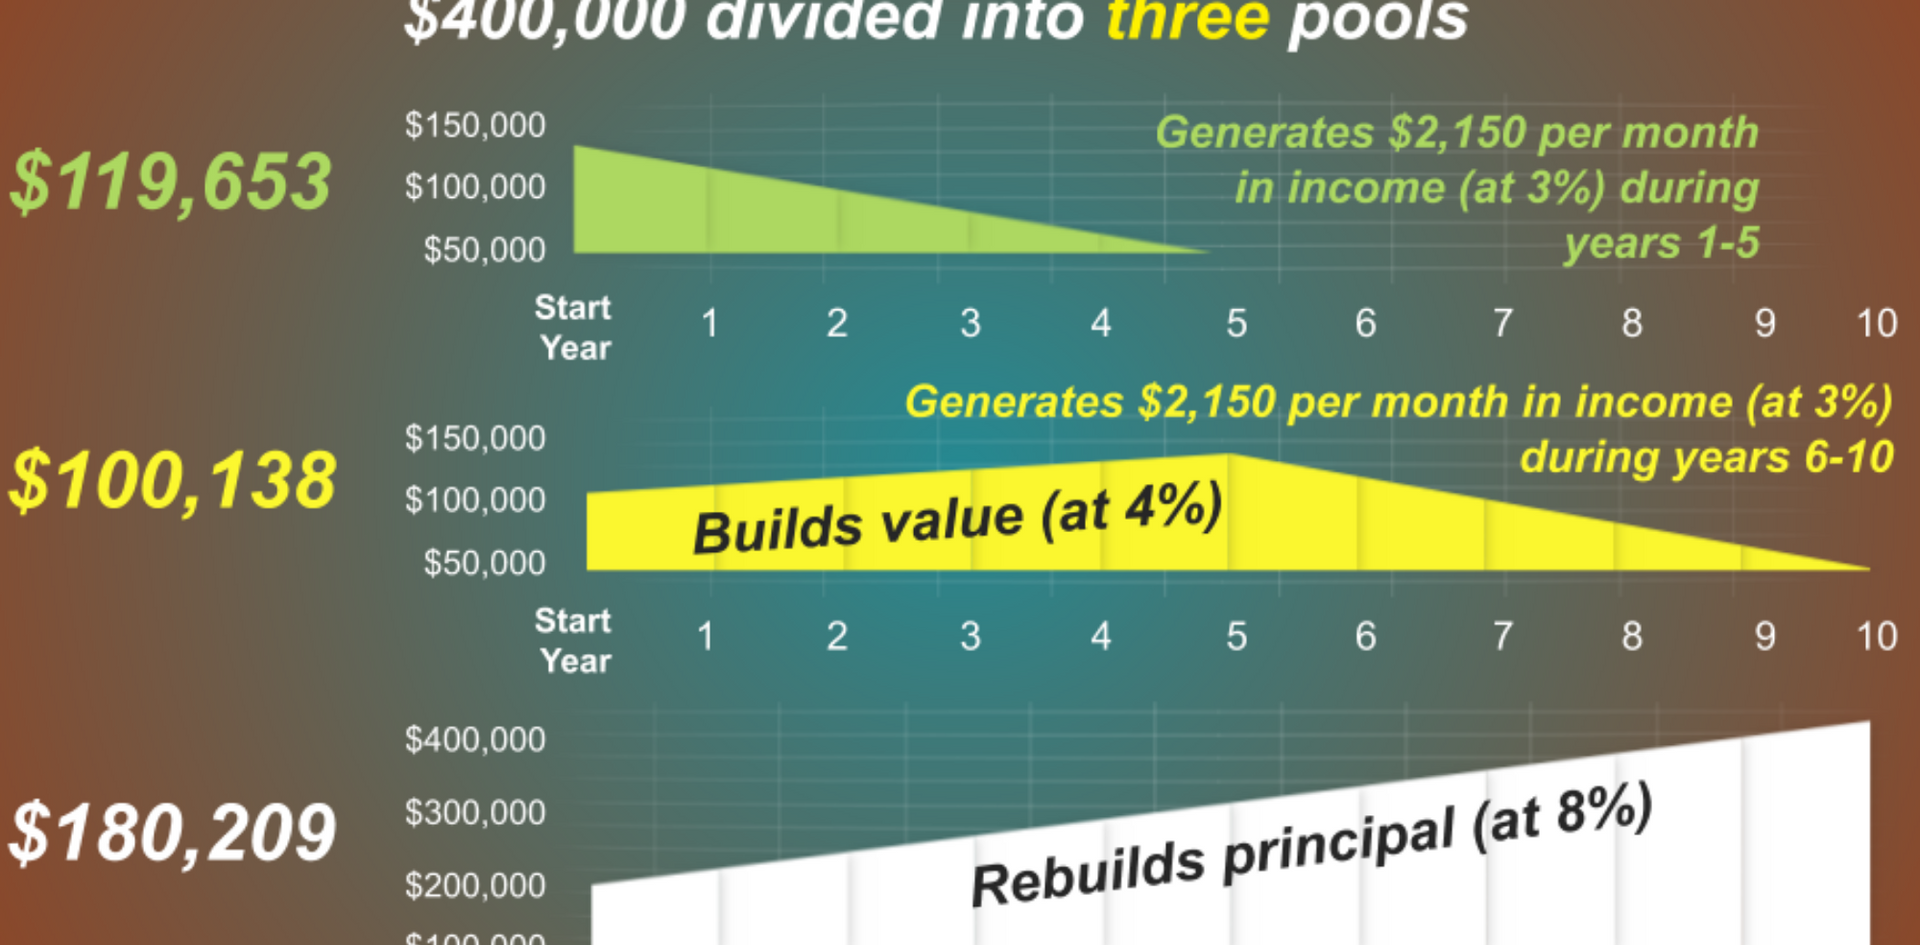 Another, somewhat more complex and aggressive strategy, involves dividing your money into three pools.   The first pool is dedicated to income.  the second to safety. and the third to growth. This shifts most investment risk to the third pool. It also means the third pool has the greatest potential for growth.   Retirees gradually spend down the first two relatively conservative pools. giving the third more time to grow. In this hypothetical example, the first pool is invested in an immediate fixed annuity. and would generate $2,150 per month in income during years 1 through 5. The second pool is invested in conservative investments, generating an average annual return of 4%.   Its objective is to replace the original five-year immediate annuity. During years 6 through 10, the second pool also would generate $2,150 per month in income. At the same time, the third pool is invested for growth to take advantage of potentially higher returns.   Keep in mind that with higher potential returns, comes an increased level of investment risk. If the strategy is successful, the investment would rebuild the $400,000 principal. and the process could start over again. In contrast to the split annuity strategy, this approach depends on relatively aggressive investment of the third pool to succeed.   You should consider carefully whether aggressive investing fits with your tolerance for investment risk. This is a hypothetical example used for illustrative purposes only. It is not representative of any specific investment or combination of investments. Actual results will vary. The guarantees of an annuity contract depend on the issuing company's claims-paying ability.   Annuities have contract limitations, fees, and charges, including account and administrative fees, underlying investment management fees, mortality and expense fees, and charges for optional benefits. Most annuities have surrender fees that are usually highest if you take out the money in the initial years of the annuity contract. Withdrawals and income payments are taxed as ordinary income. If a withdrawal is made prior to age 59½, a 10% federal income tax penalty may apply, (unless an exception applies). Annuities are not guaranteed by the F D I C or any other government agency.